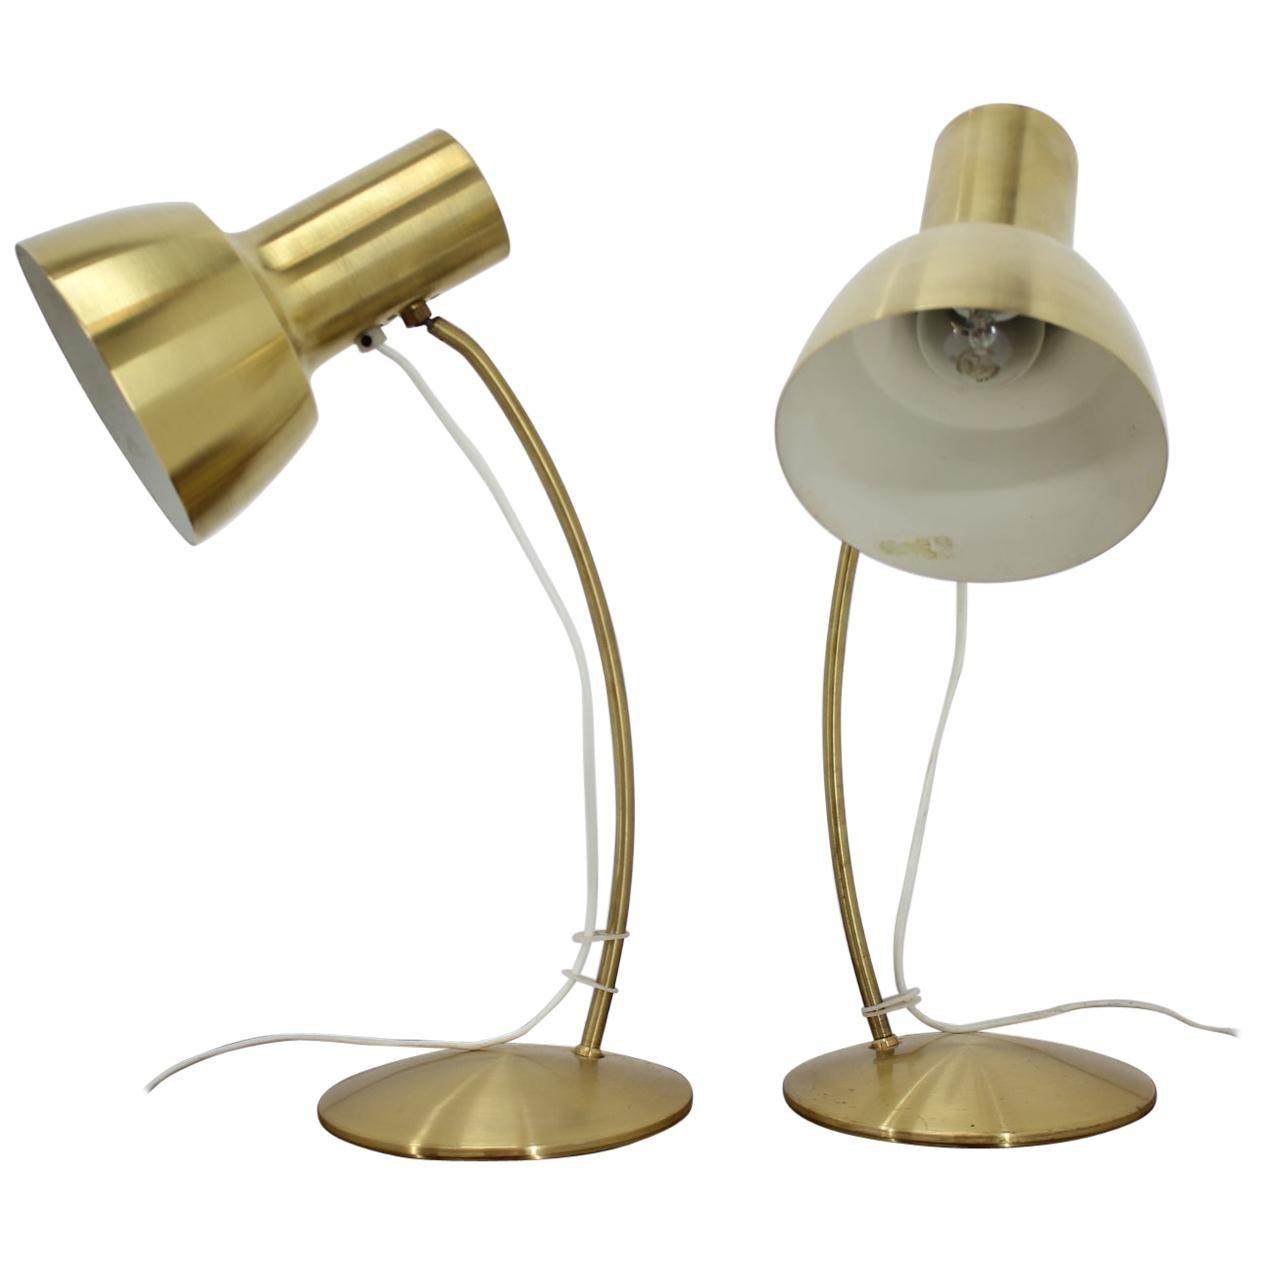 1960s Pair of Gold Table Napako Lamps, Czechoslovakia